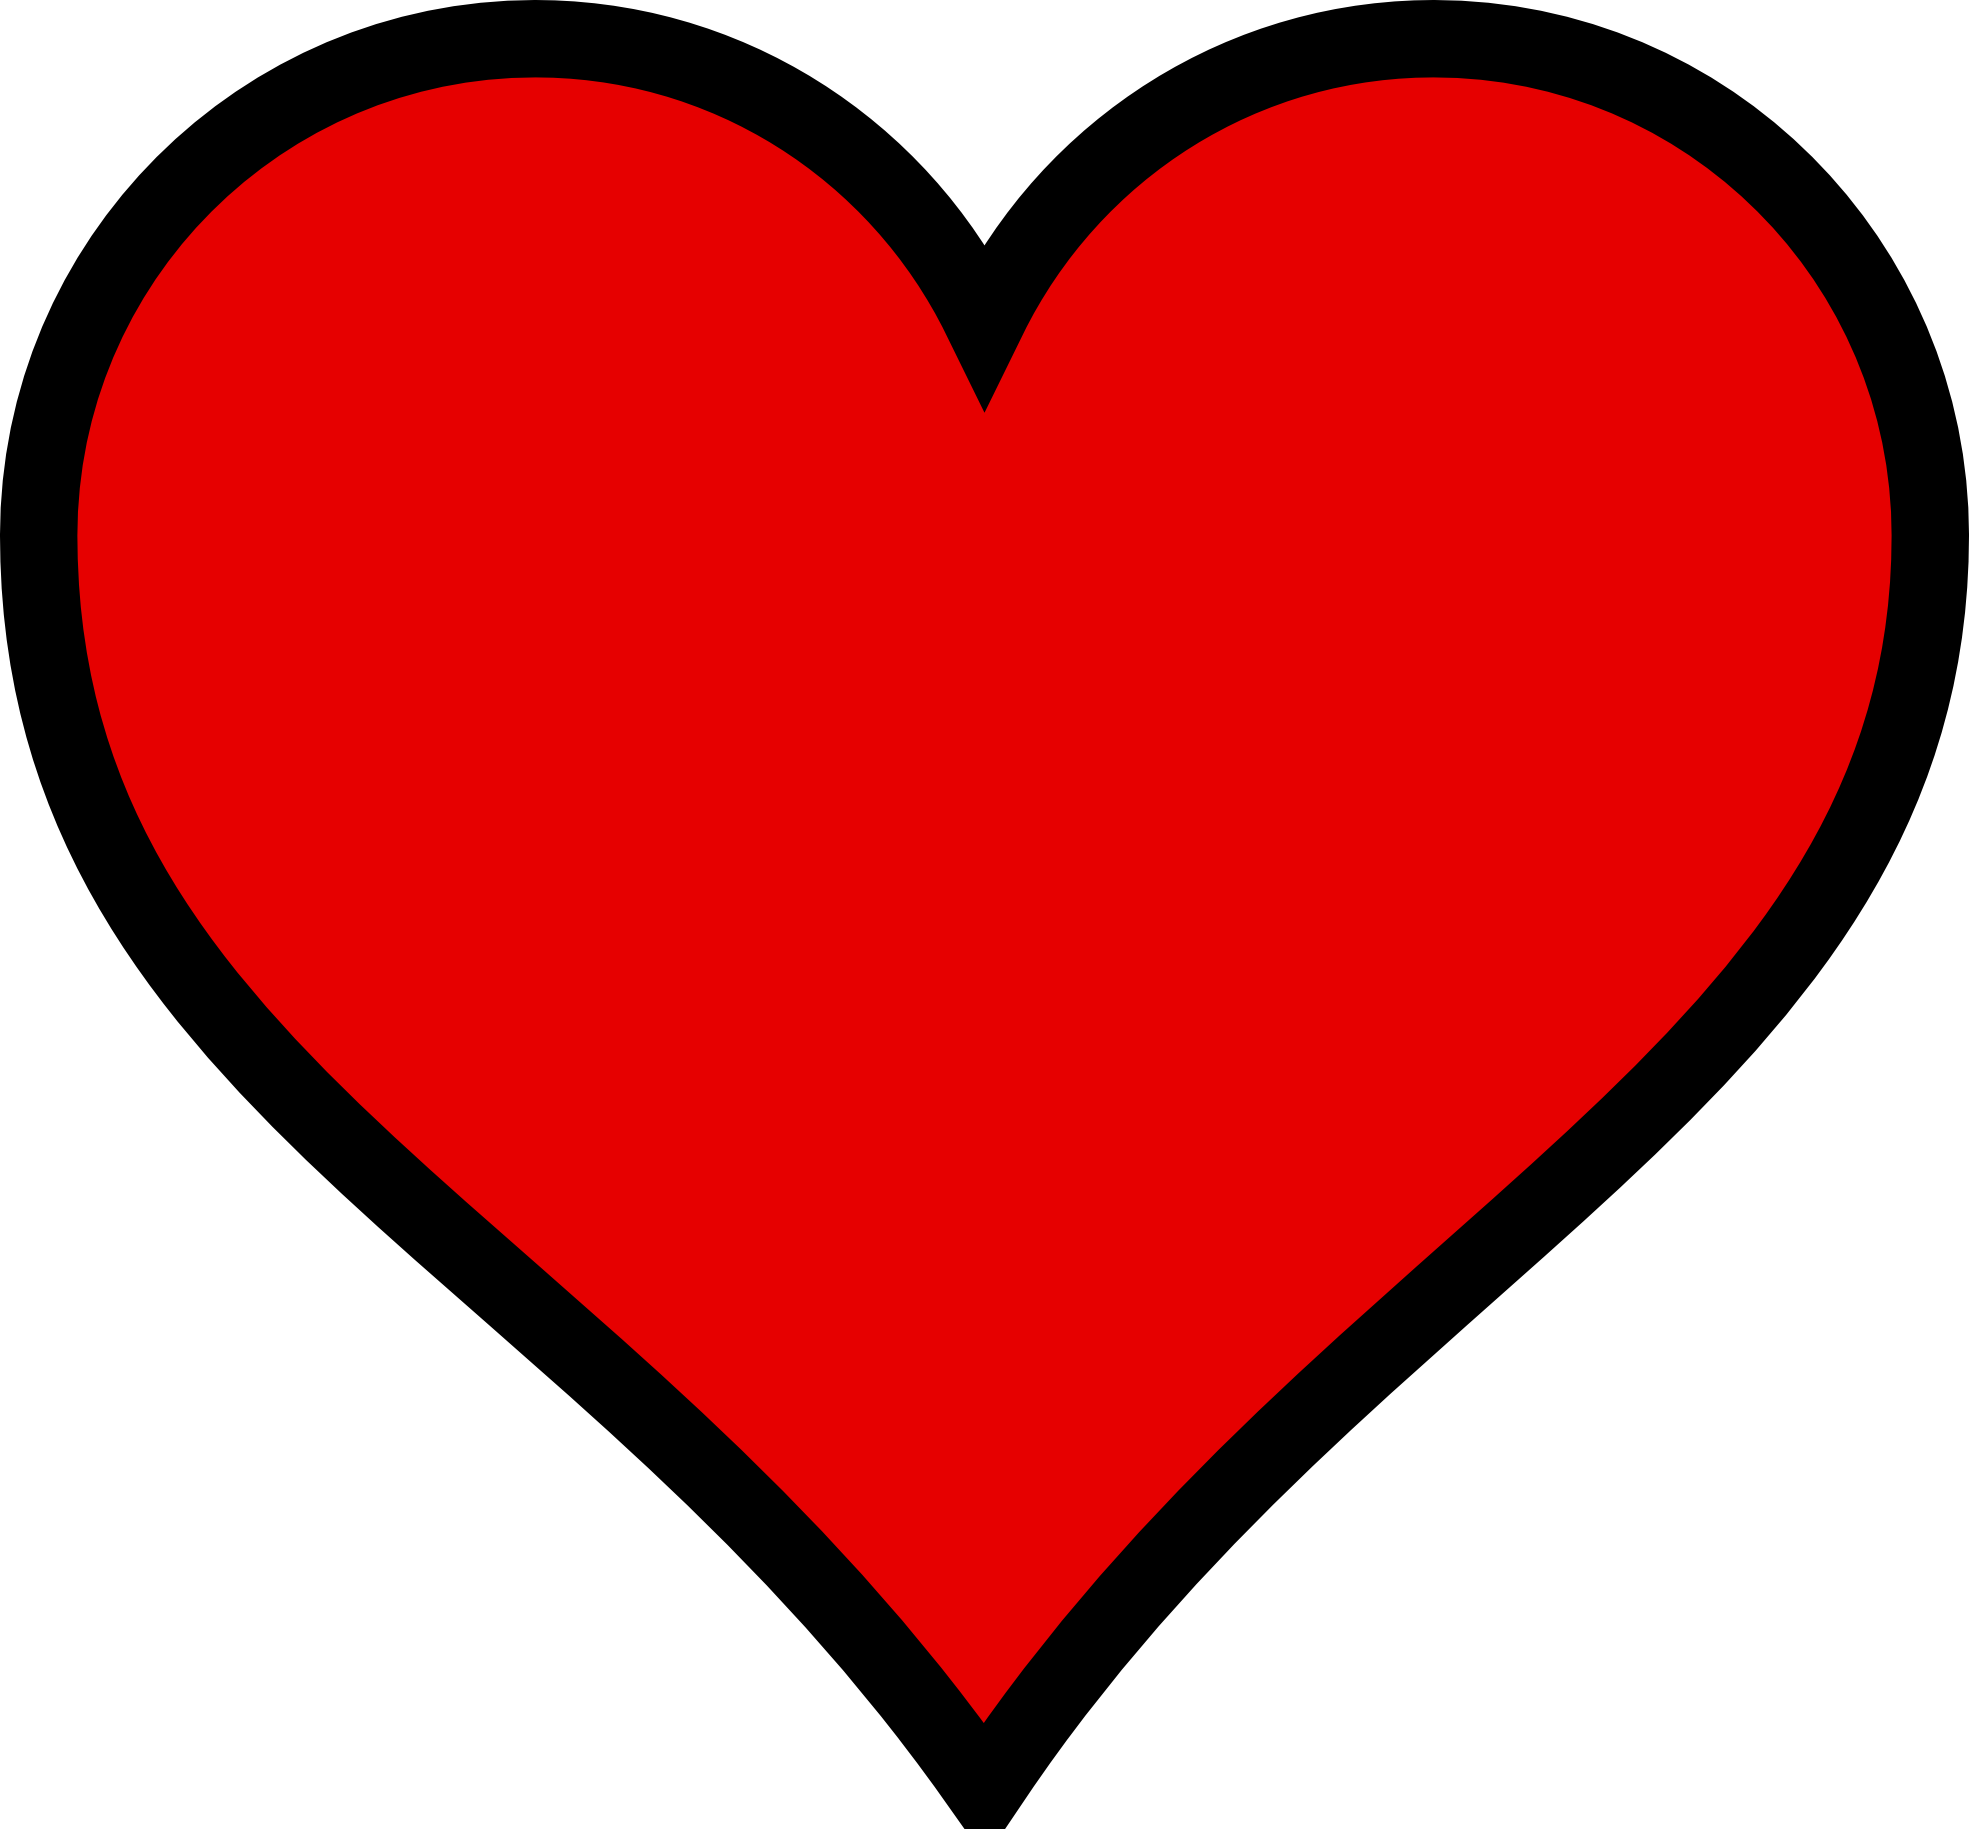 1_heart.png